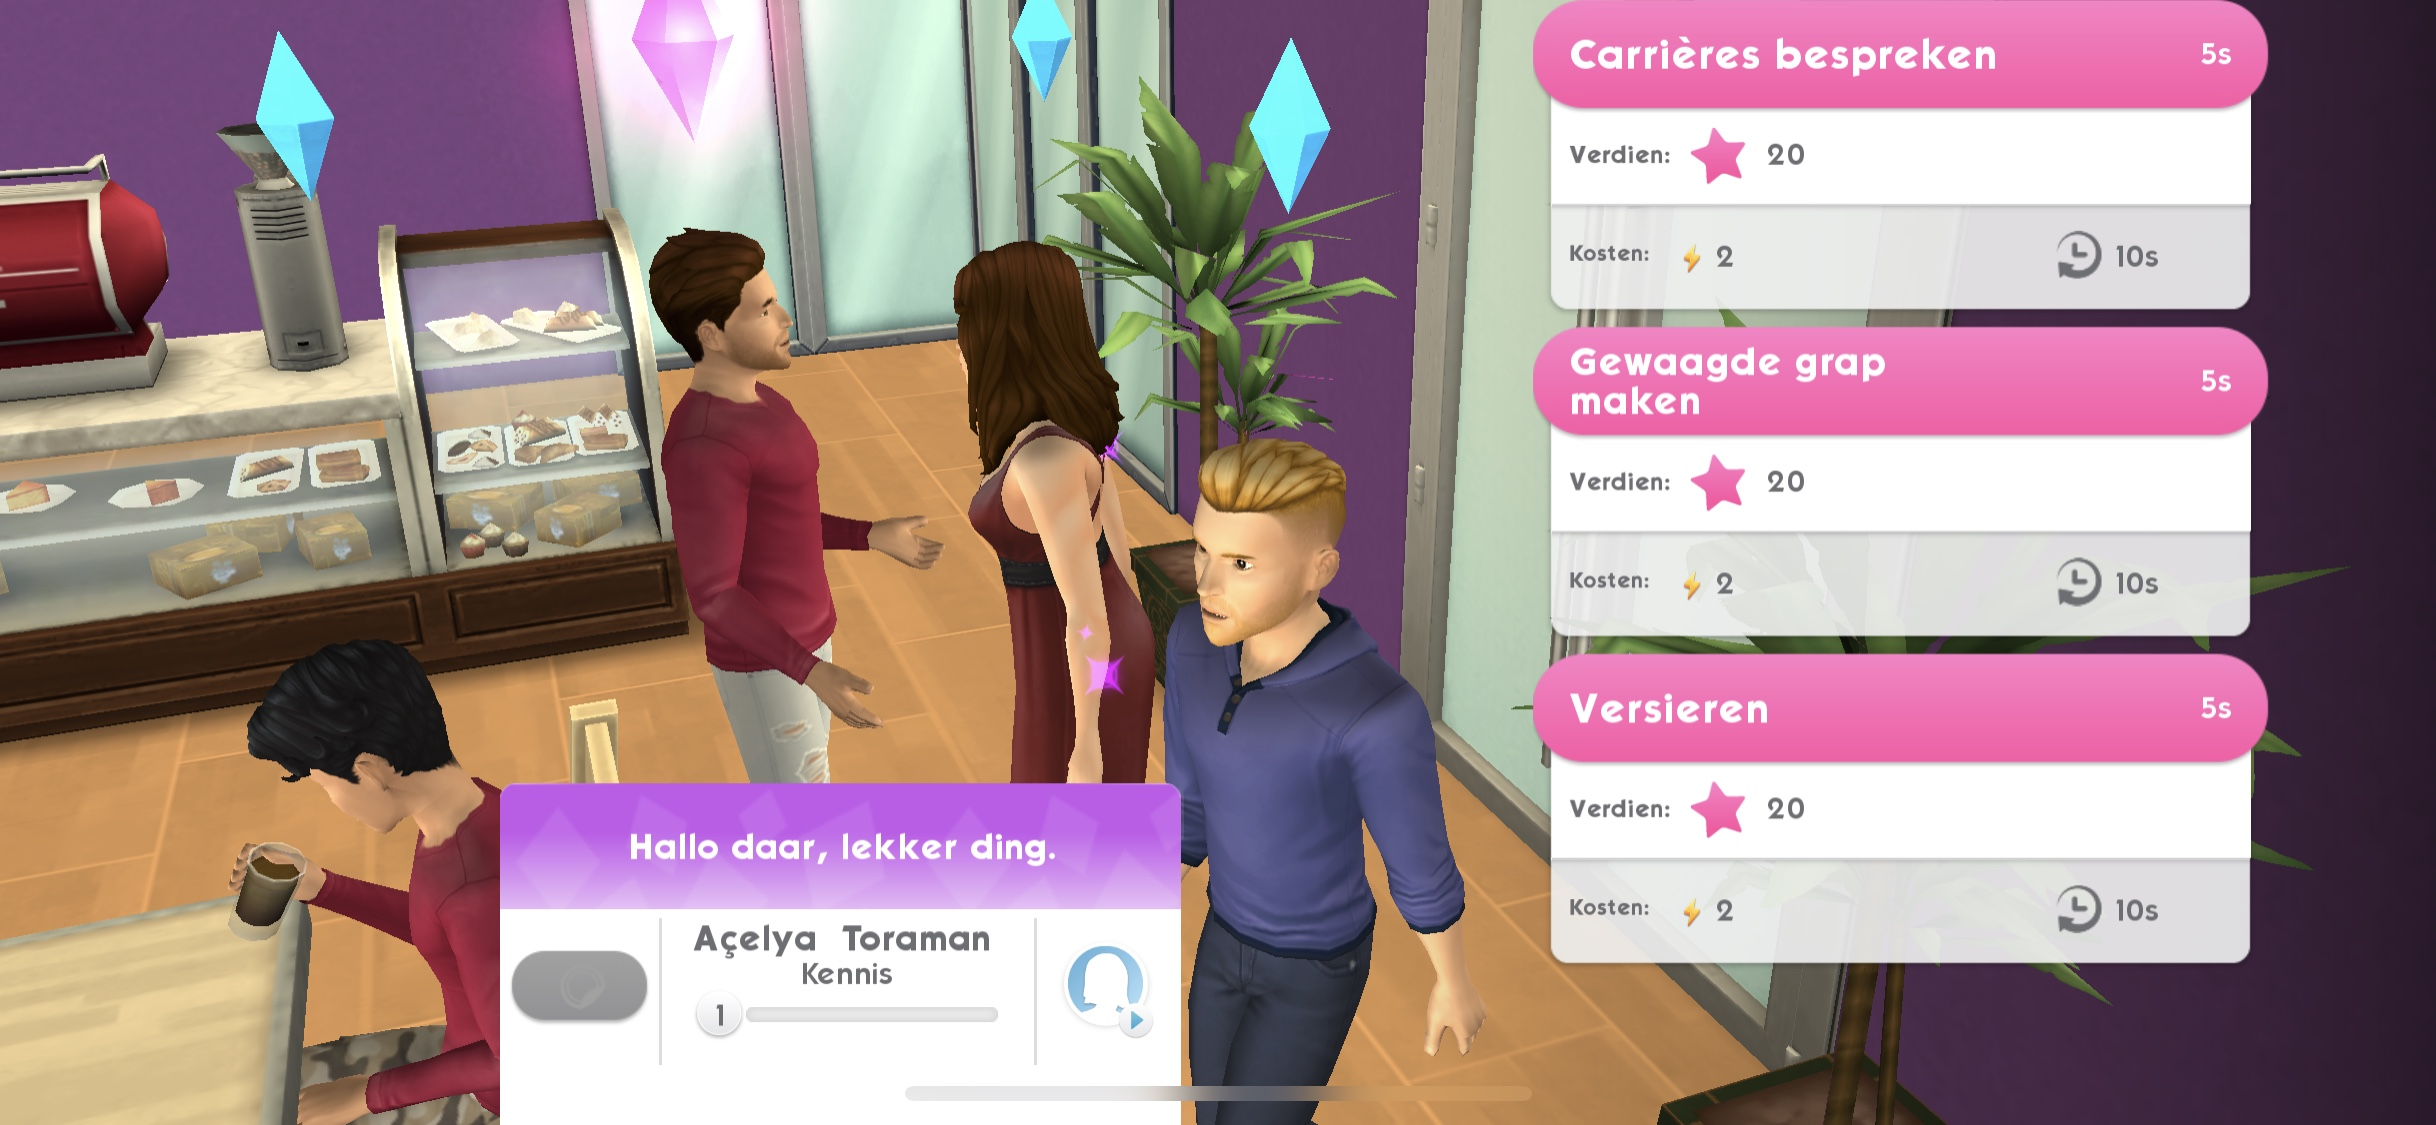 De Sims Mobile Screenshot 1